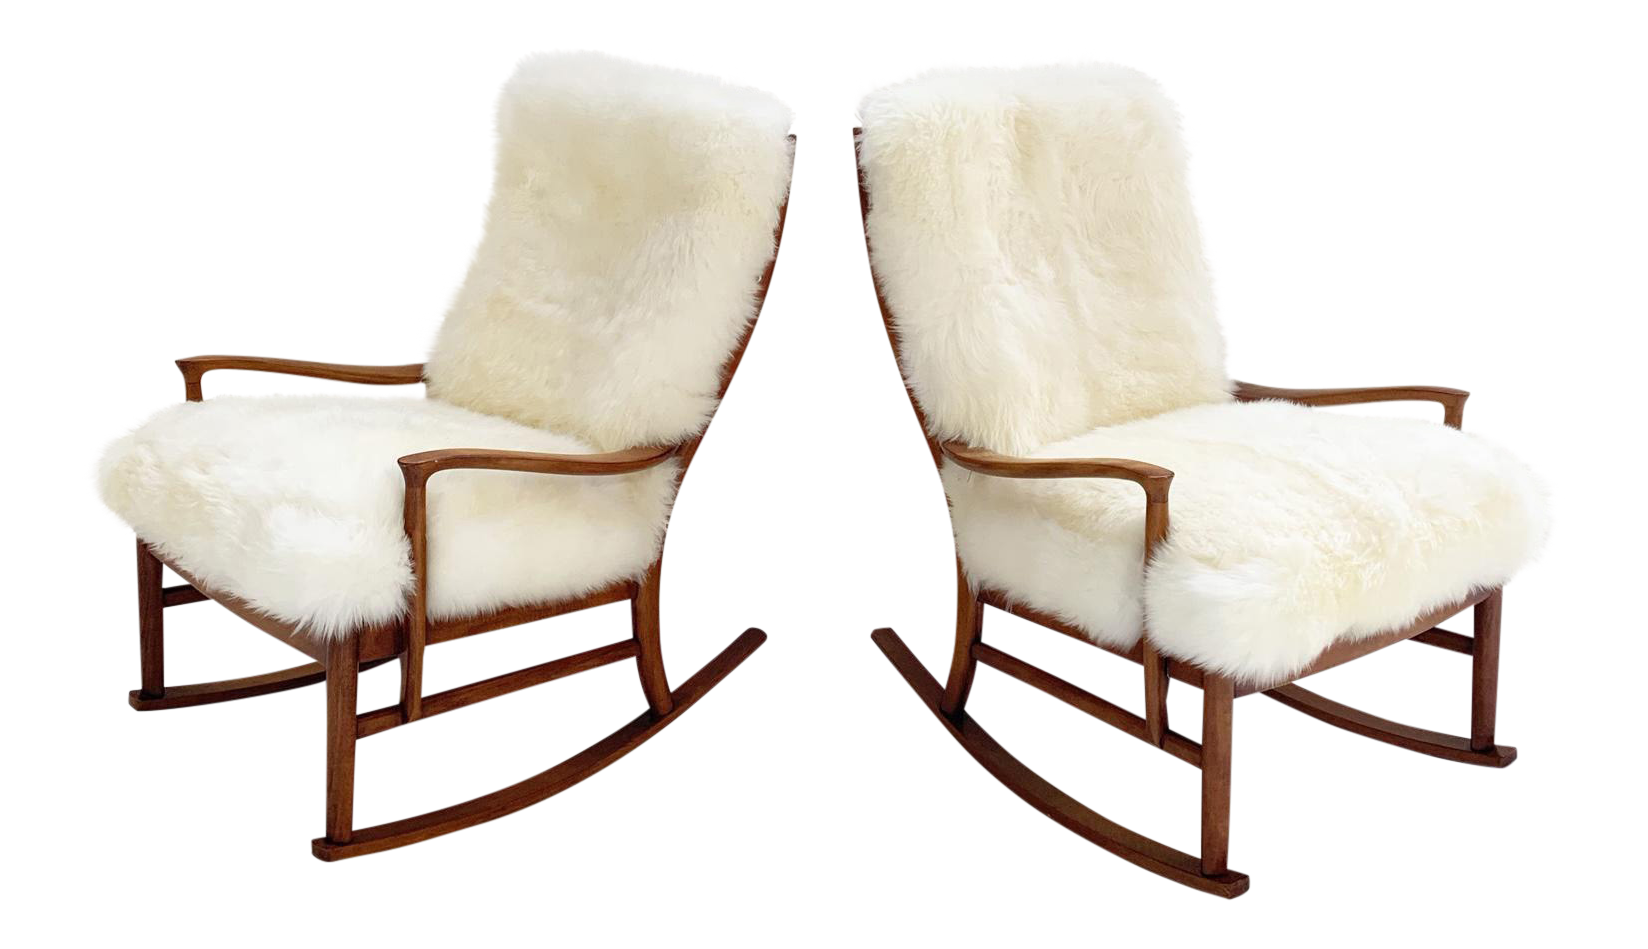 Brilliant Parker Knoll Rocking Chairs With New Zealand Sheepskin Cushions Pair Onthecornerstone Fun Painted Chair Ideas Images Onthecornerstoneorg